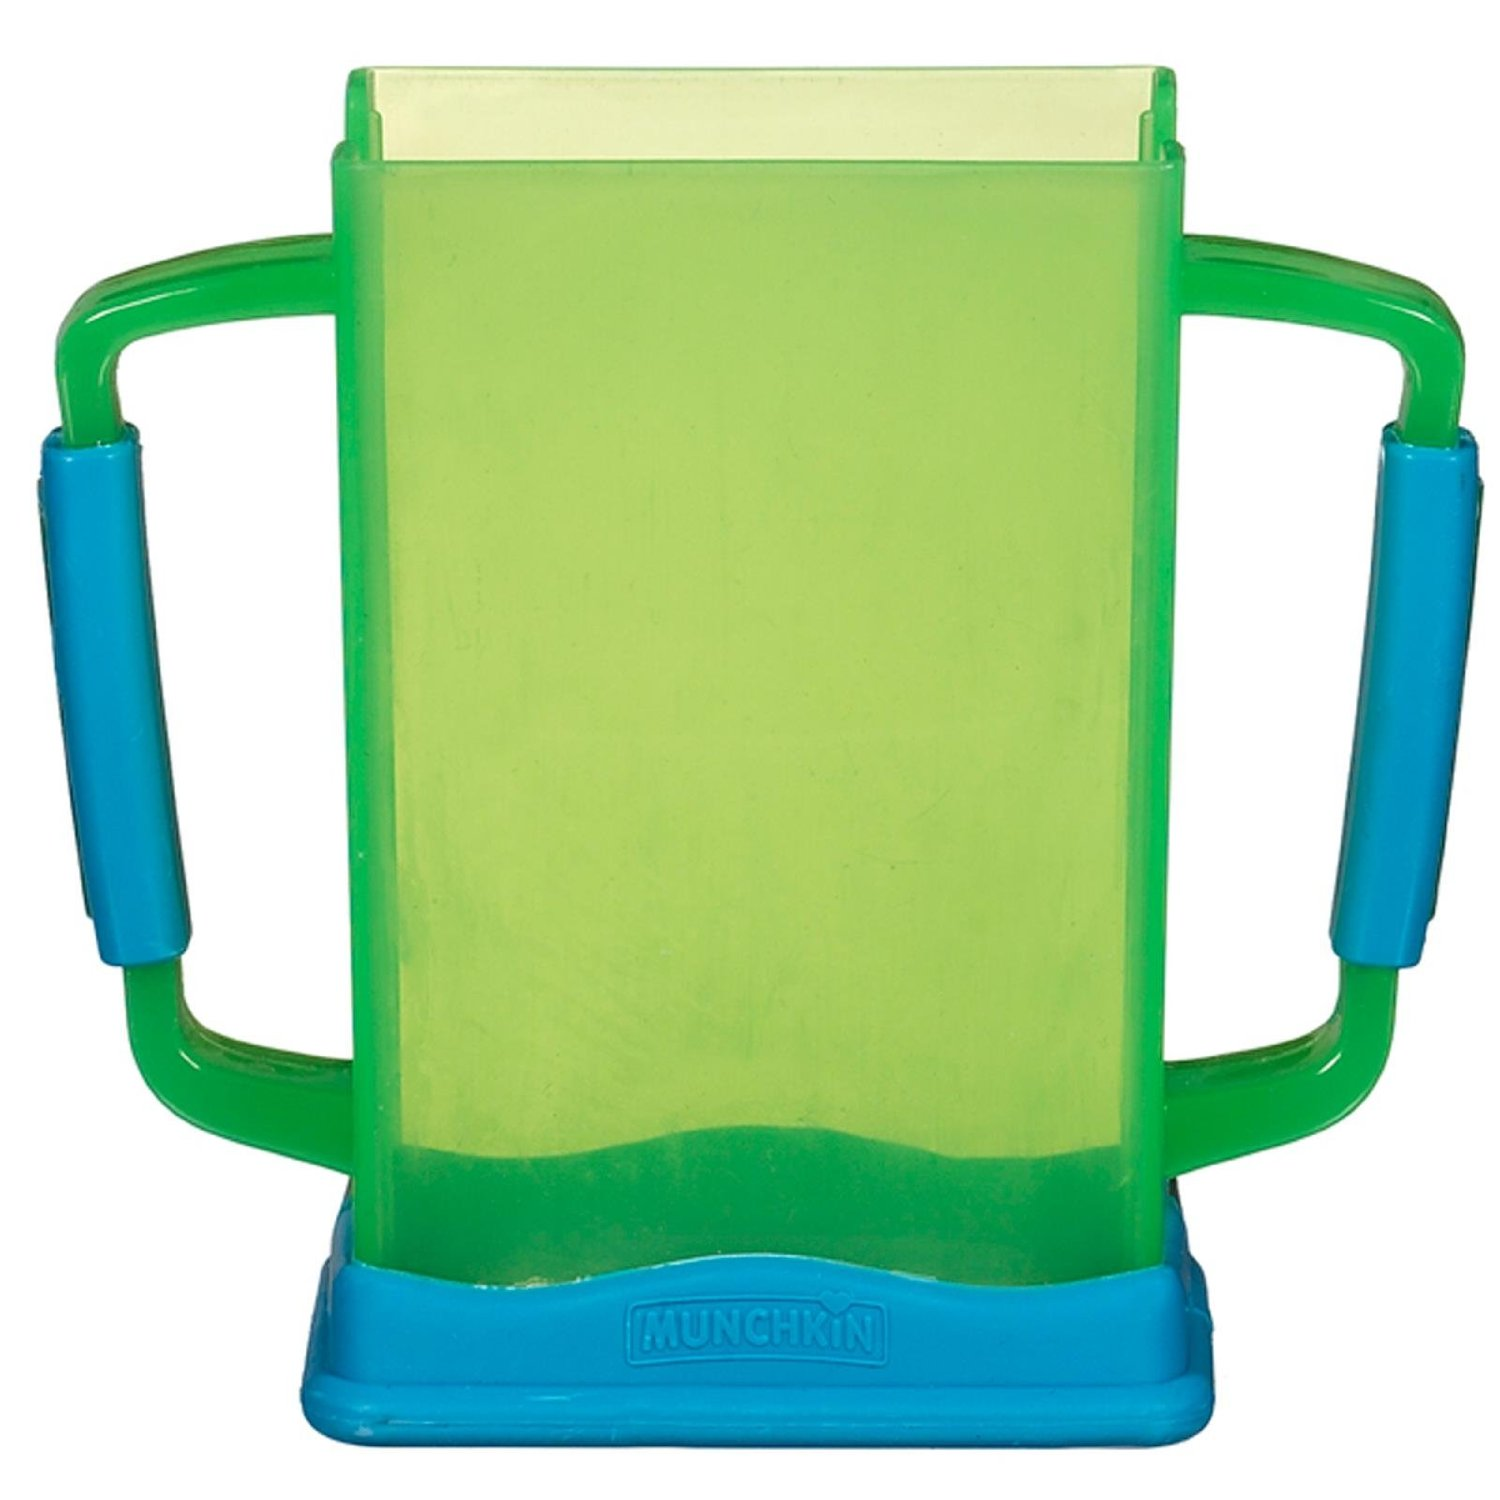 Munchkin Drink Box Carrier - Green